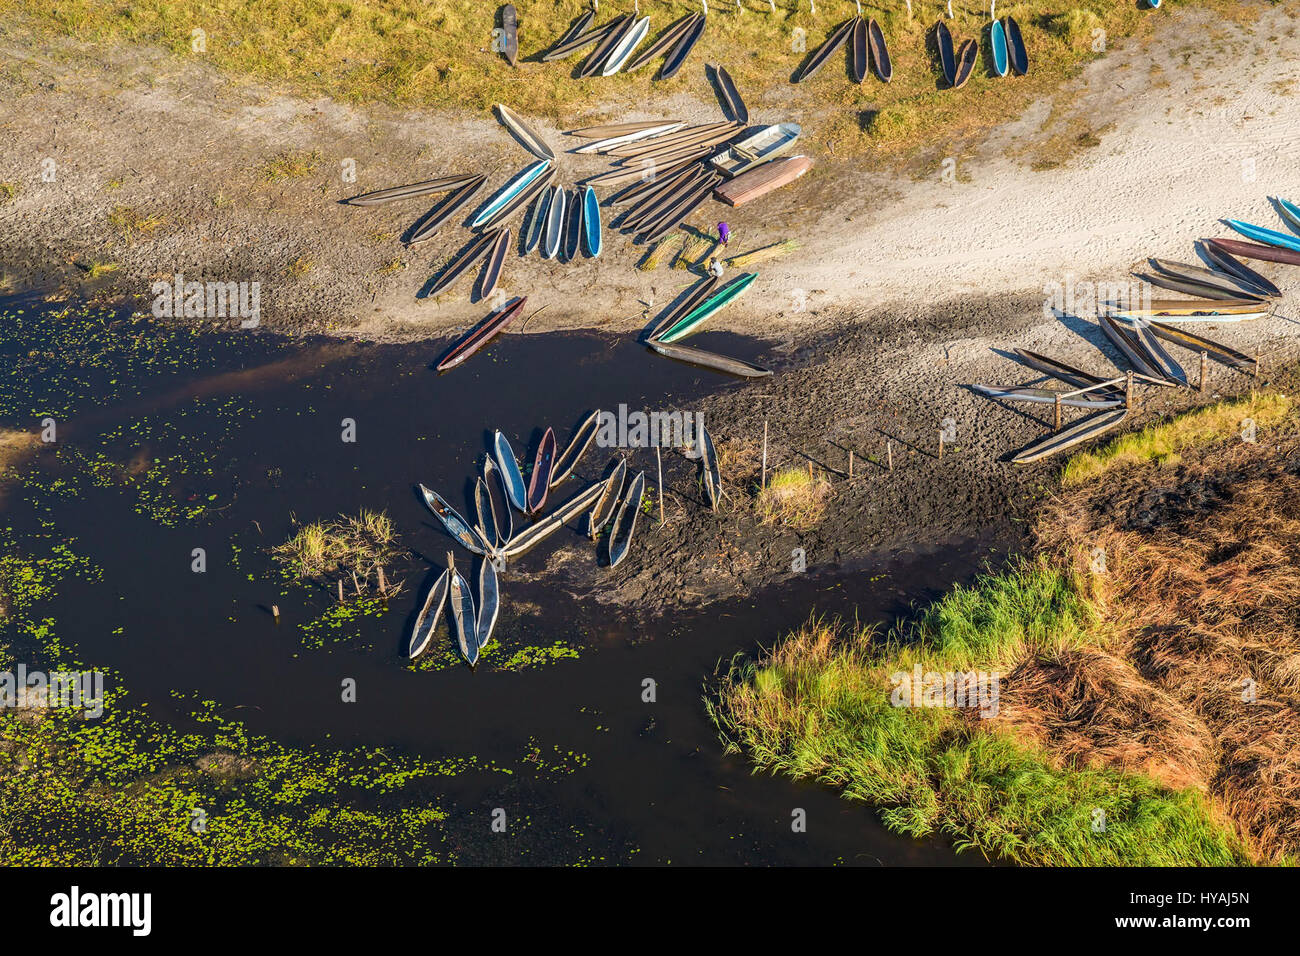 OKAVANGO DELTA, BOTSWANA: BIG GAME animals have been made to look like tiny insects in these awe-inspiring aerial - Stock Image